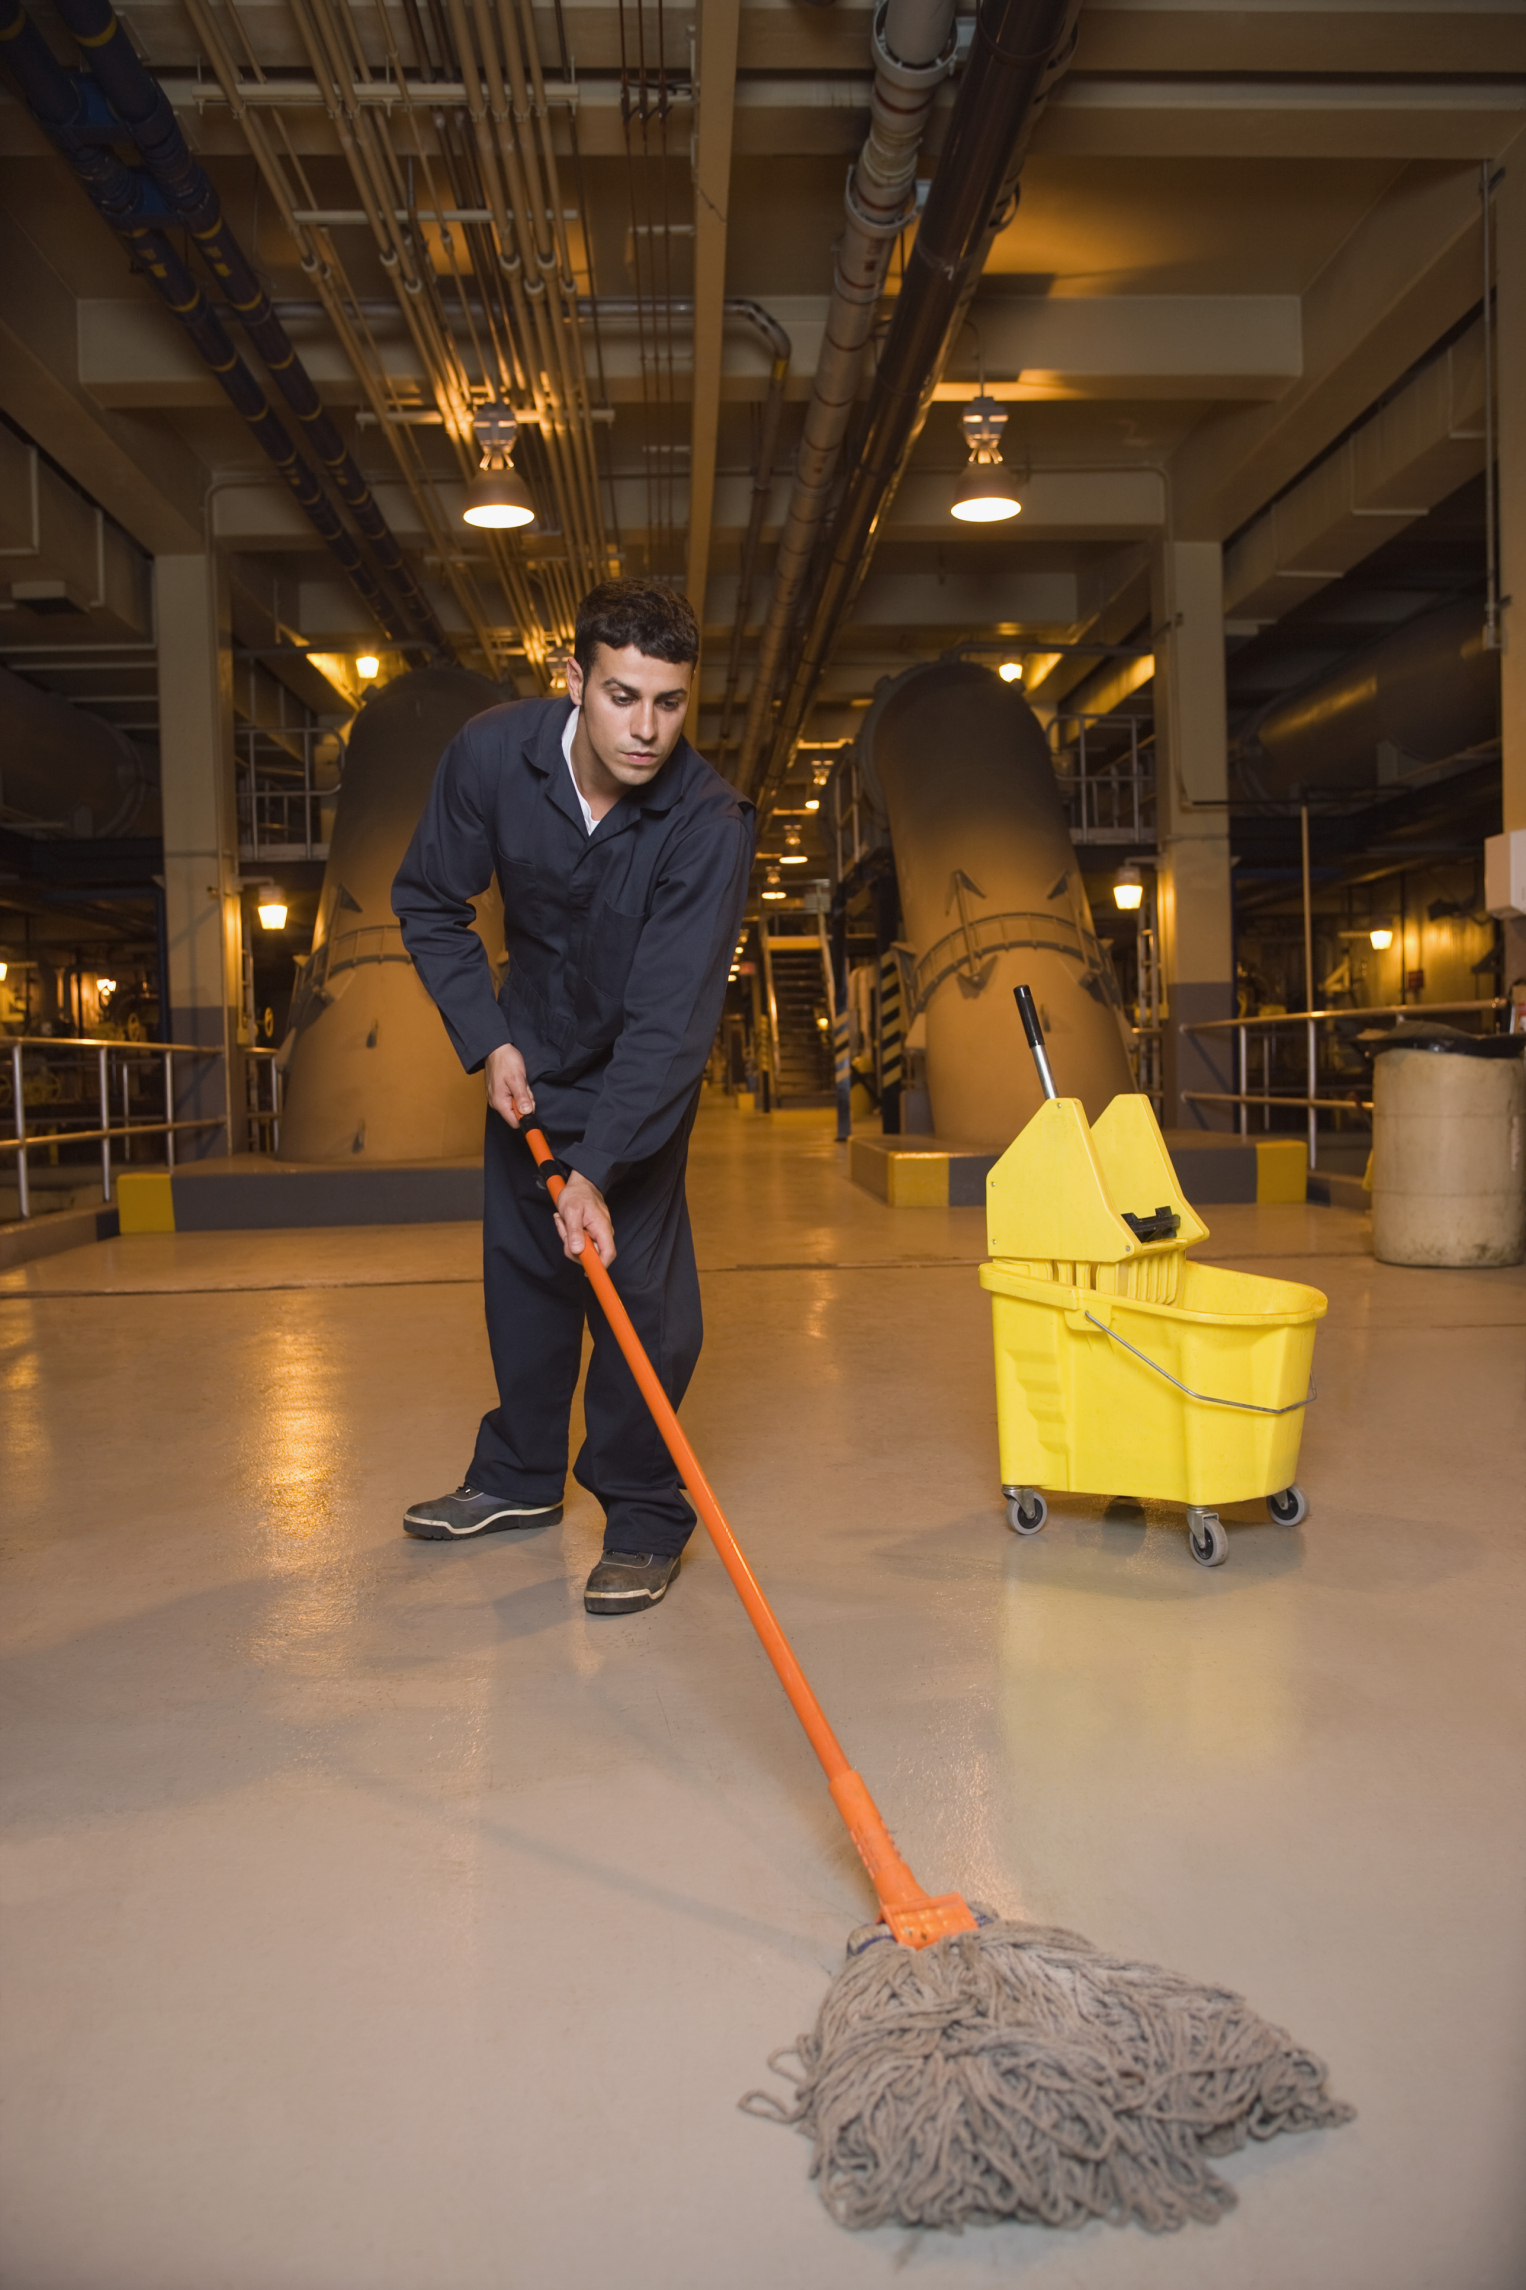 Central Texas Janitorial in Elgin